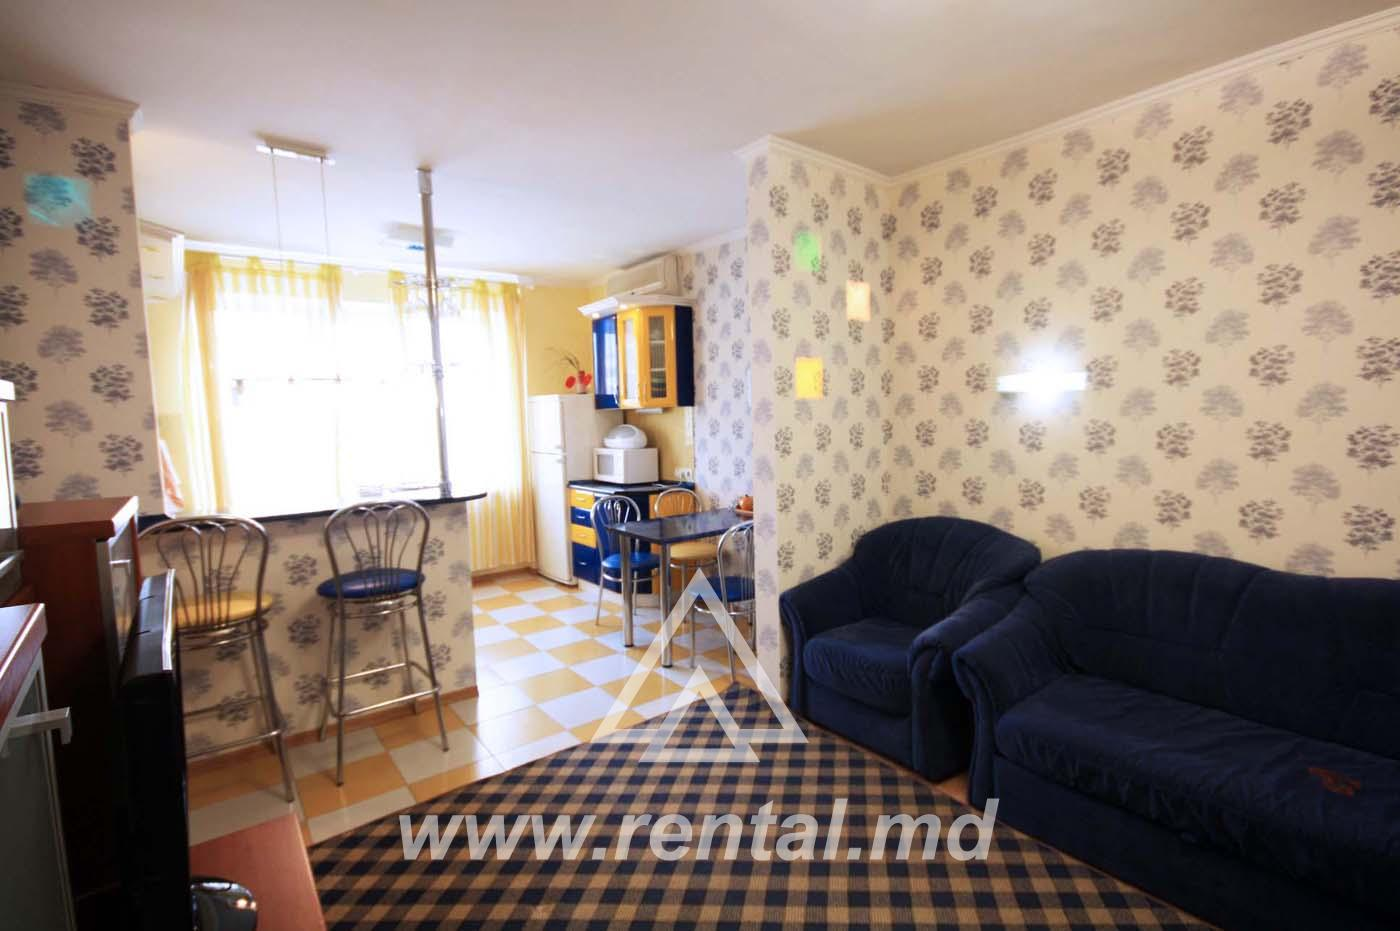 Apartment for rent in the city center with one bedroom